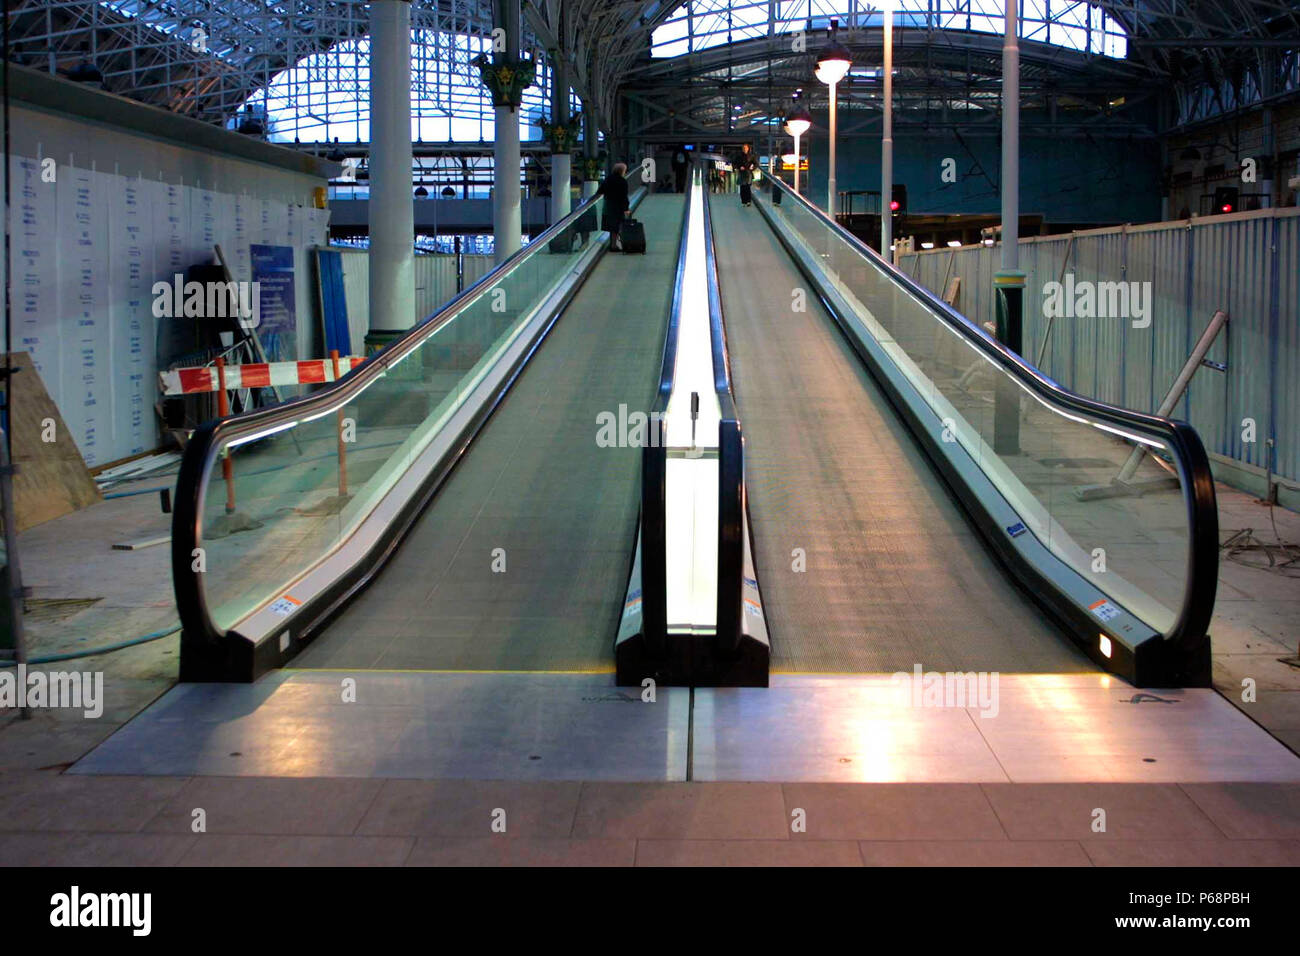 The travelator at Manchester Piccadilly station shortly after being built. 2003. - Stock Image